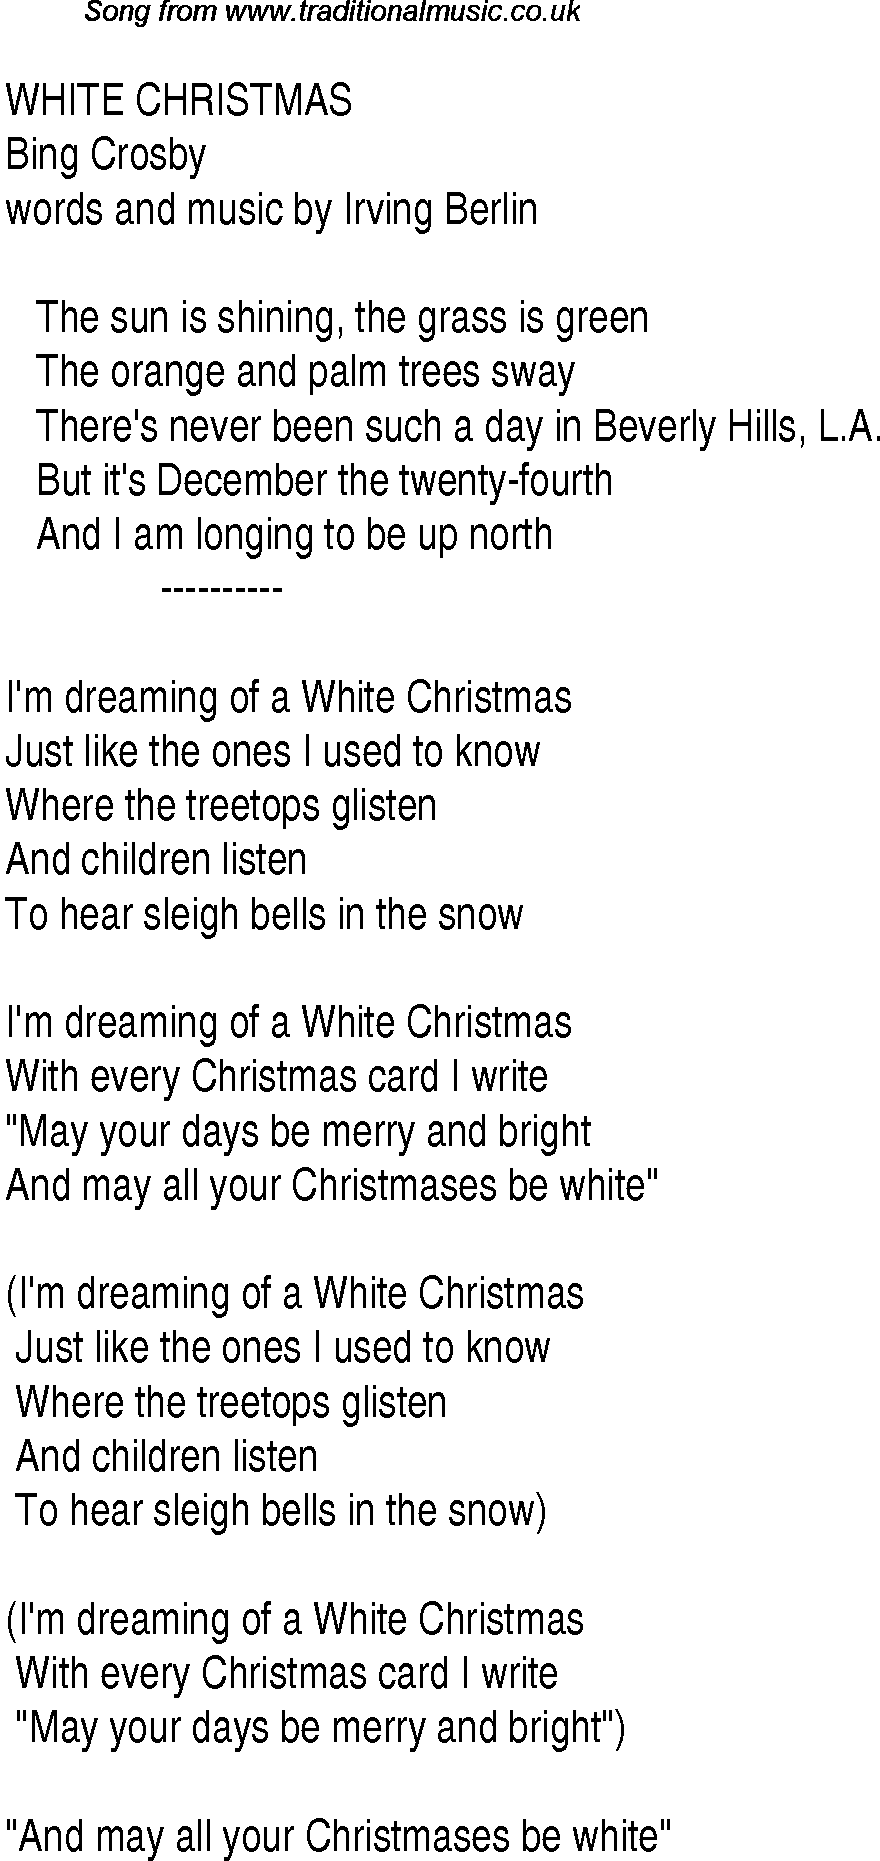 top songs 1948 music charts lyrics for white christmas